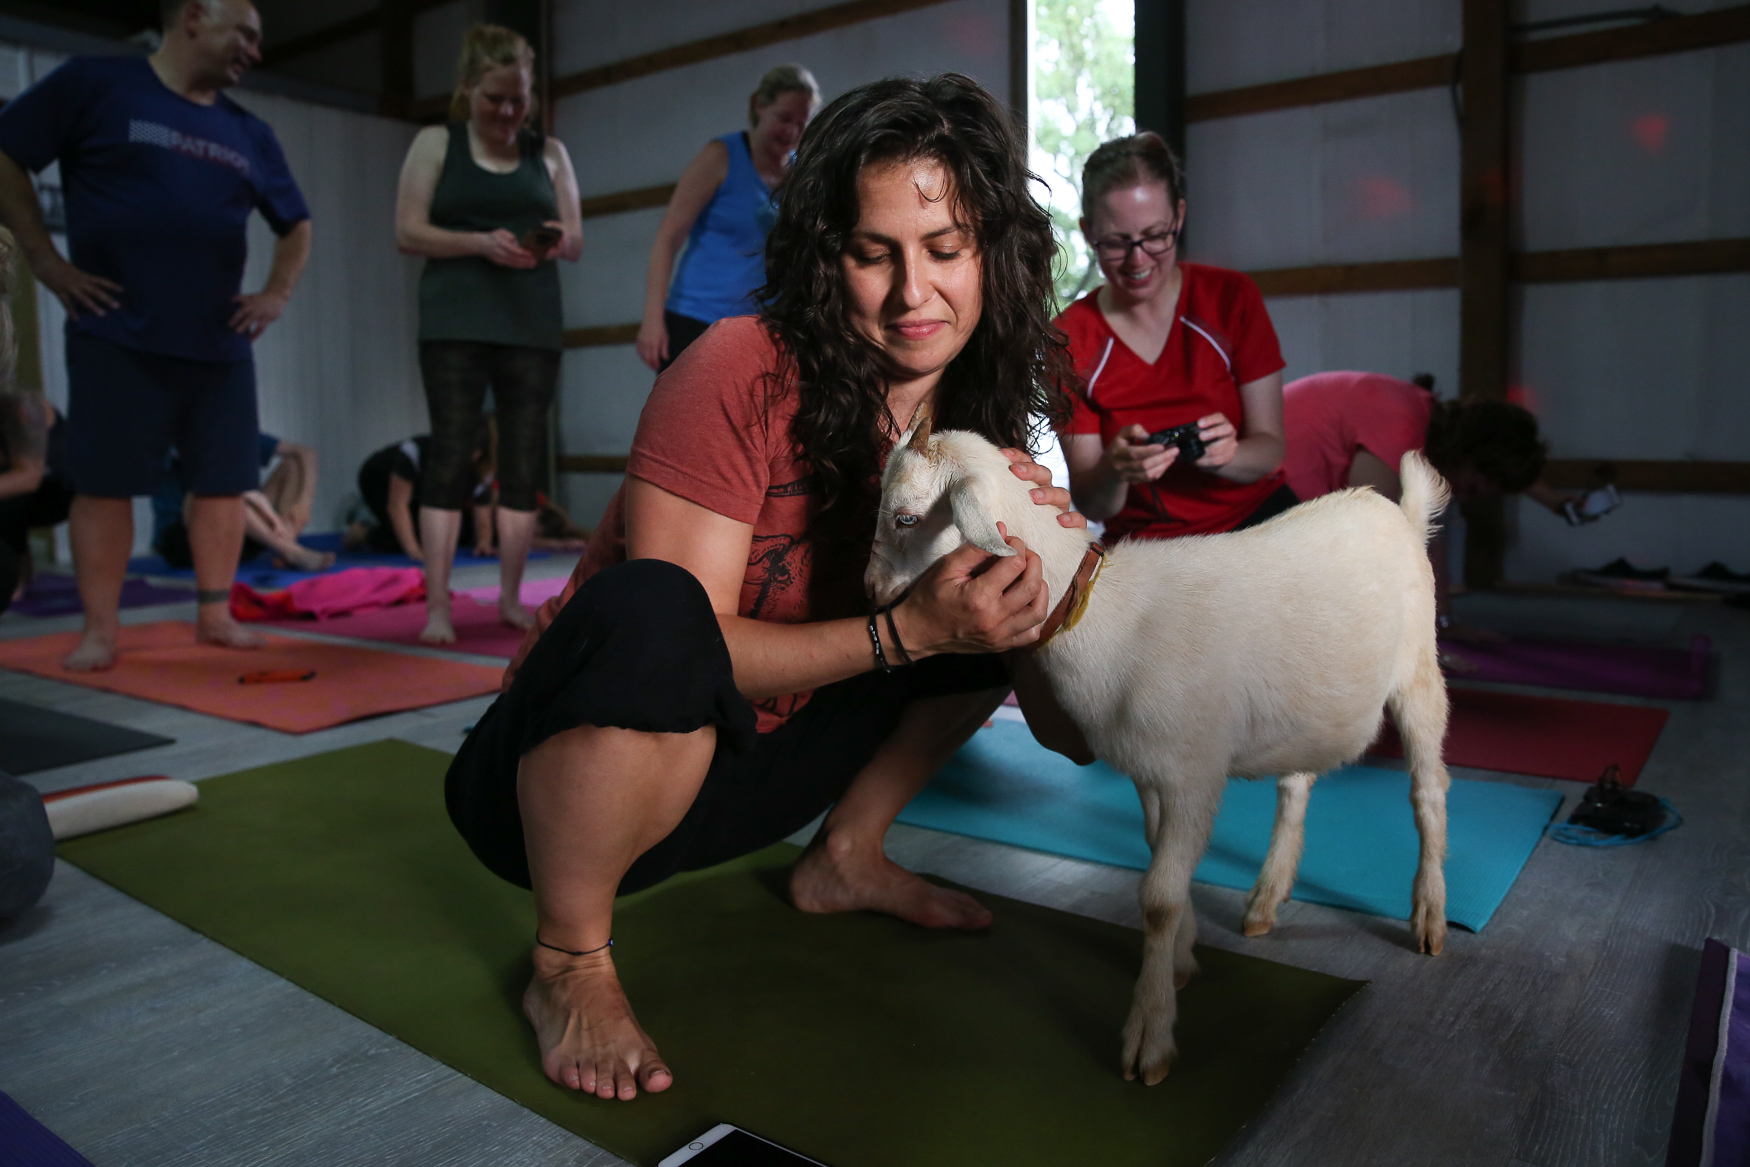 Dozens of yogis and goat lovers crammed their mats and water bottles into the barn of Four Hills Farm in{ }Catharpin, VA, on June 23 to find the center and play with goats. Although yoga is normally a relaxing workout for most people, the hour-long session was interrupted with fits of giggles as baby goats hopped on people's backs, nibbled on pony tails or stopped for a bottle feeding. The yoga sessions are normally held at the Little Goat Farm at the Lake in nearby Nokesville, VA, but the event (and the goats) were moved indoors due to heavy rains. The evening also included live music, kombucha samples and plenty of selfie opportunities. The rain wasn't too much of a detractor though - at one point in the class, a rainbow appeared and ended in the farm's yard. Don't worry if you missed this yoga session, The Little Goat Farm at the Lake will offer more goat yoga throughout the summer. (Amanda Andrade-Rhoades/DC Refined)